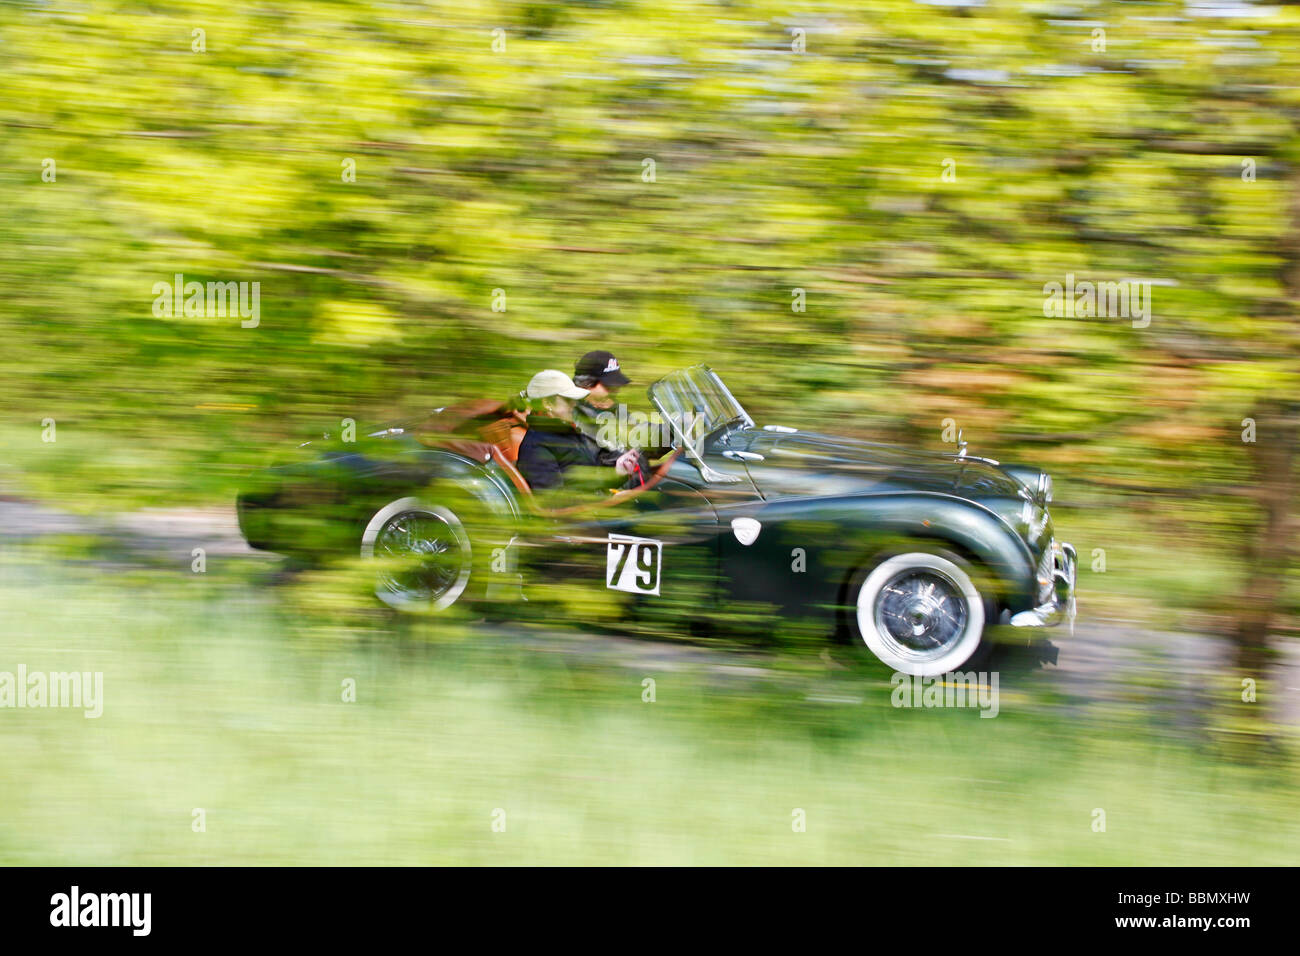 Triumph TR 3A, built in 1959, vintage car motor rally Wiesbaden 2009, Hesse, Germany, Europe Stock Photo